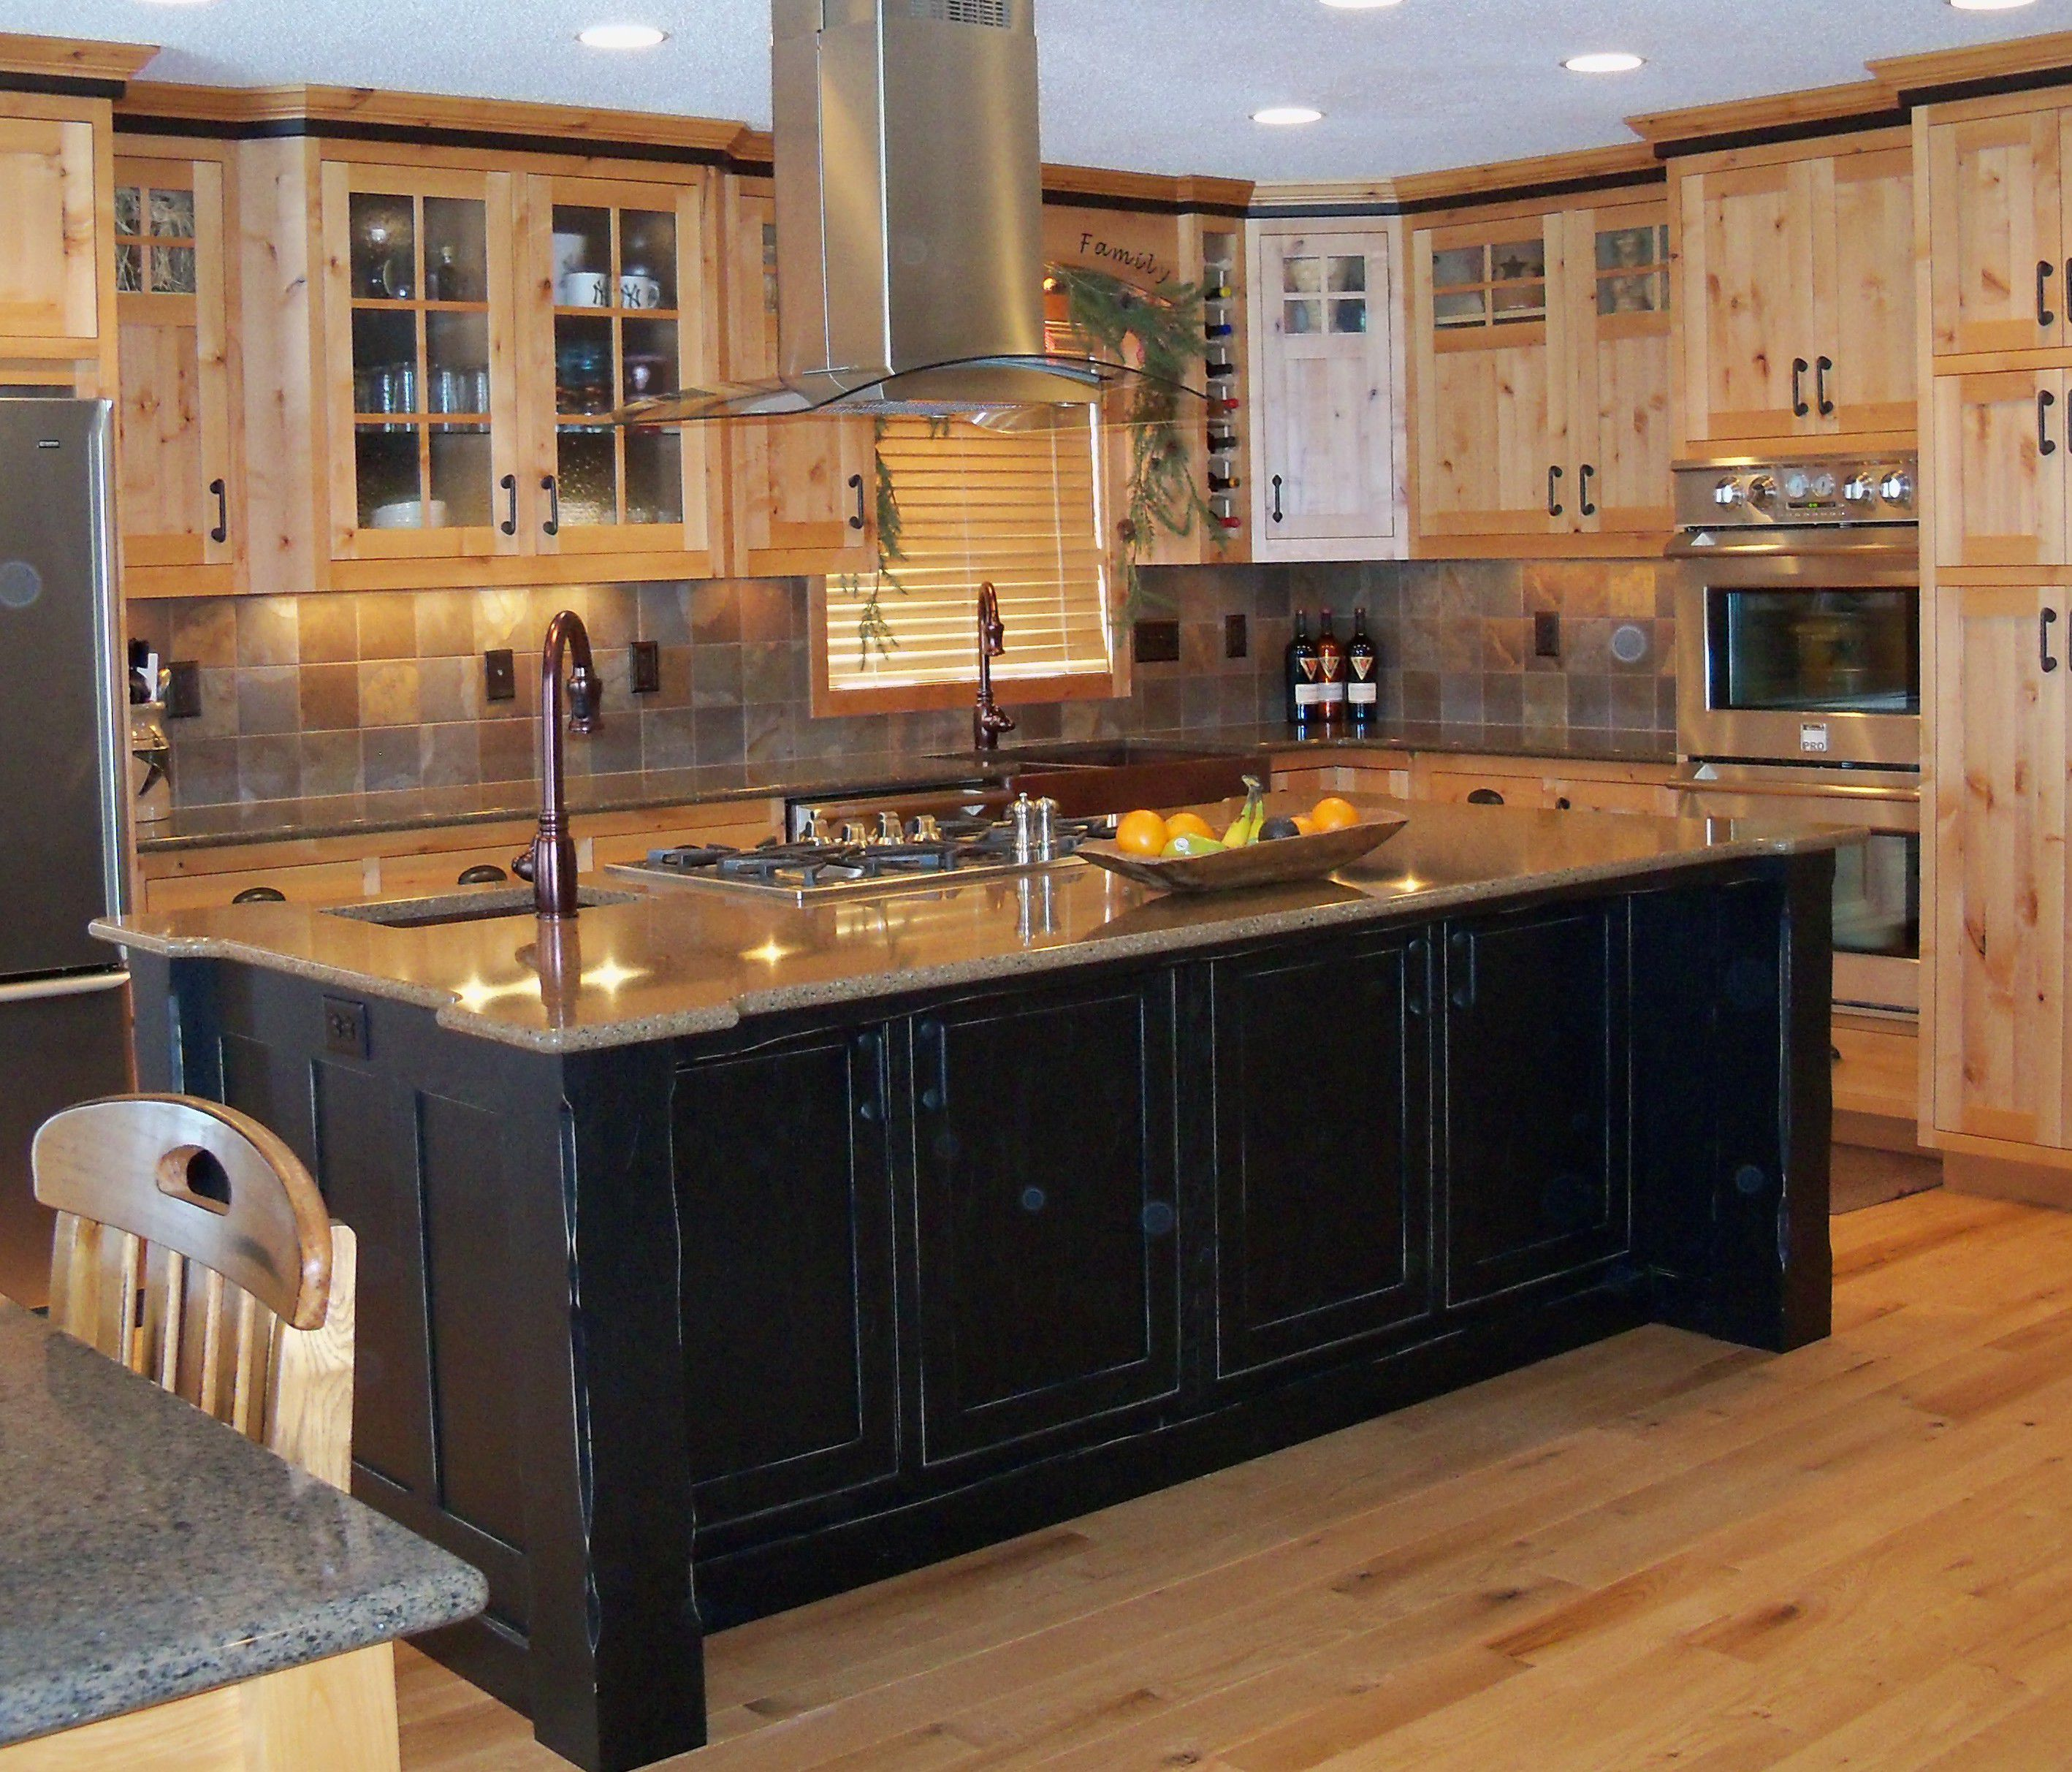 Classy Furniture of Black Kitchen Island Using Wooden Cabinet and Faucet